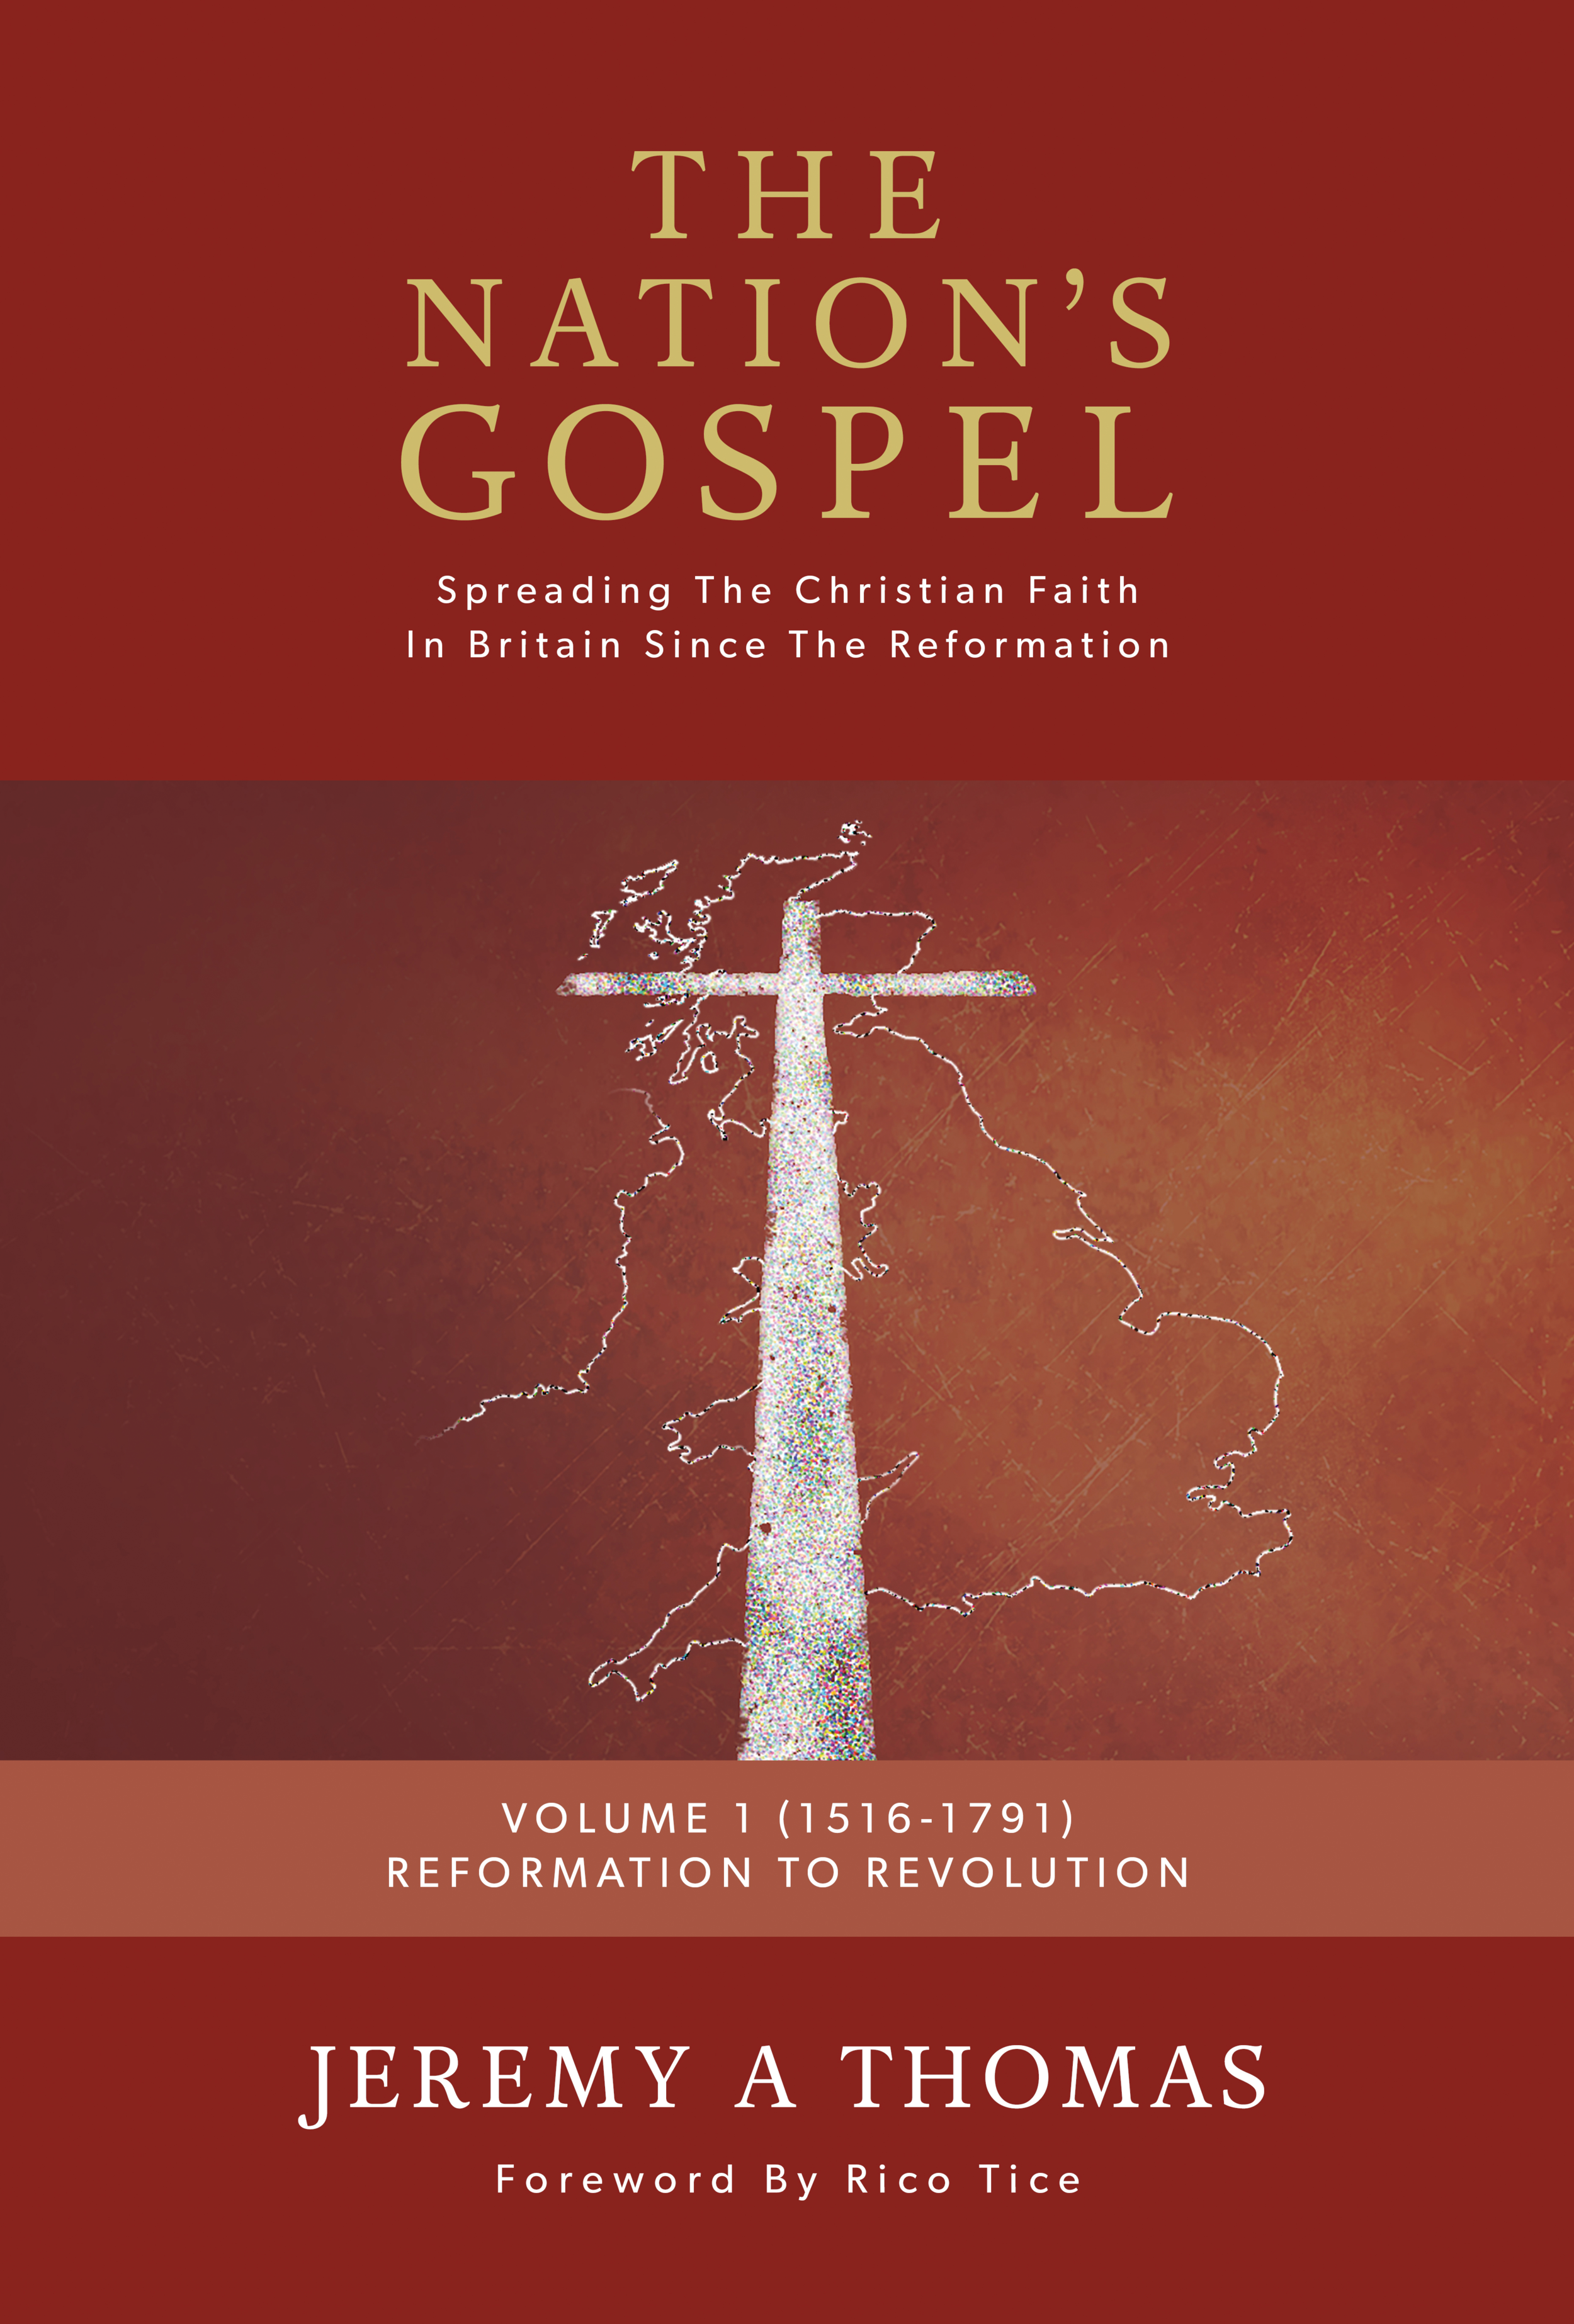 The Nation's Gospel Vol 1 (1516-1791) - How the Christian faith was spread in Britain from the Reformation to Wesley